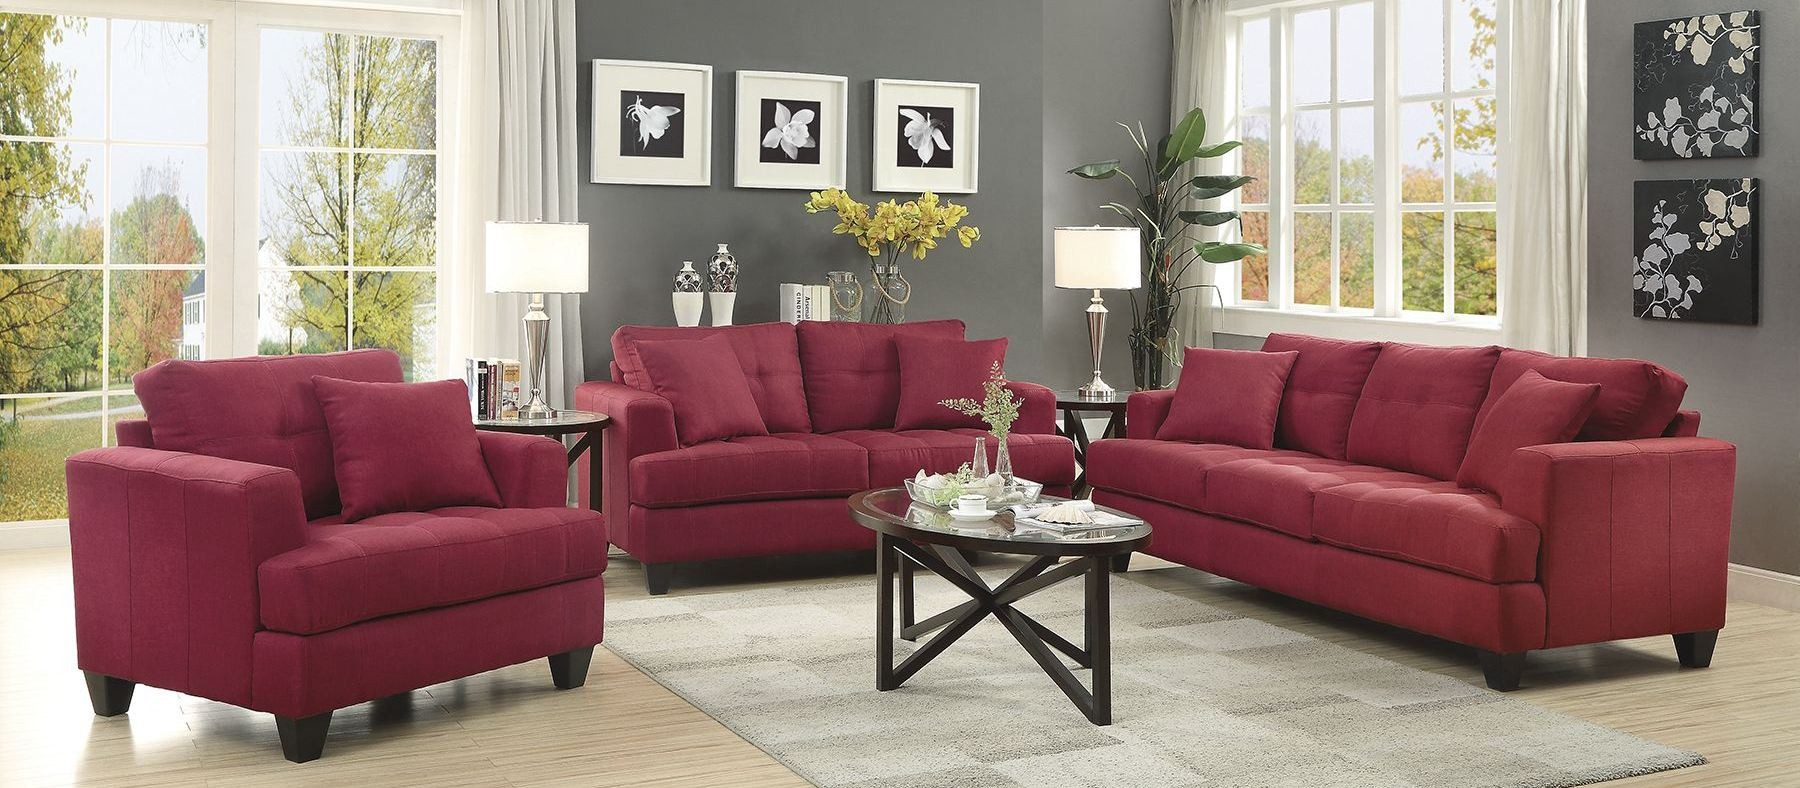 samuel red living room set 505185 coaster furniture. Black Bedroom Furniture Sets. Home Design Ideas